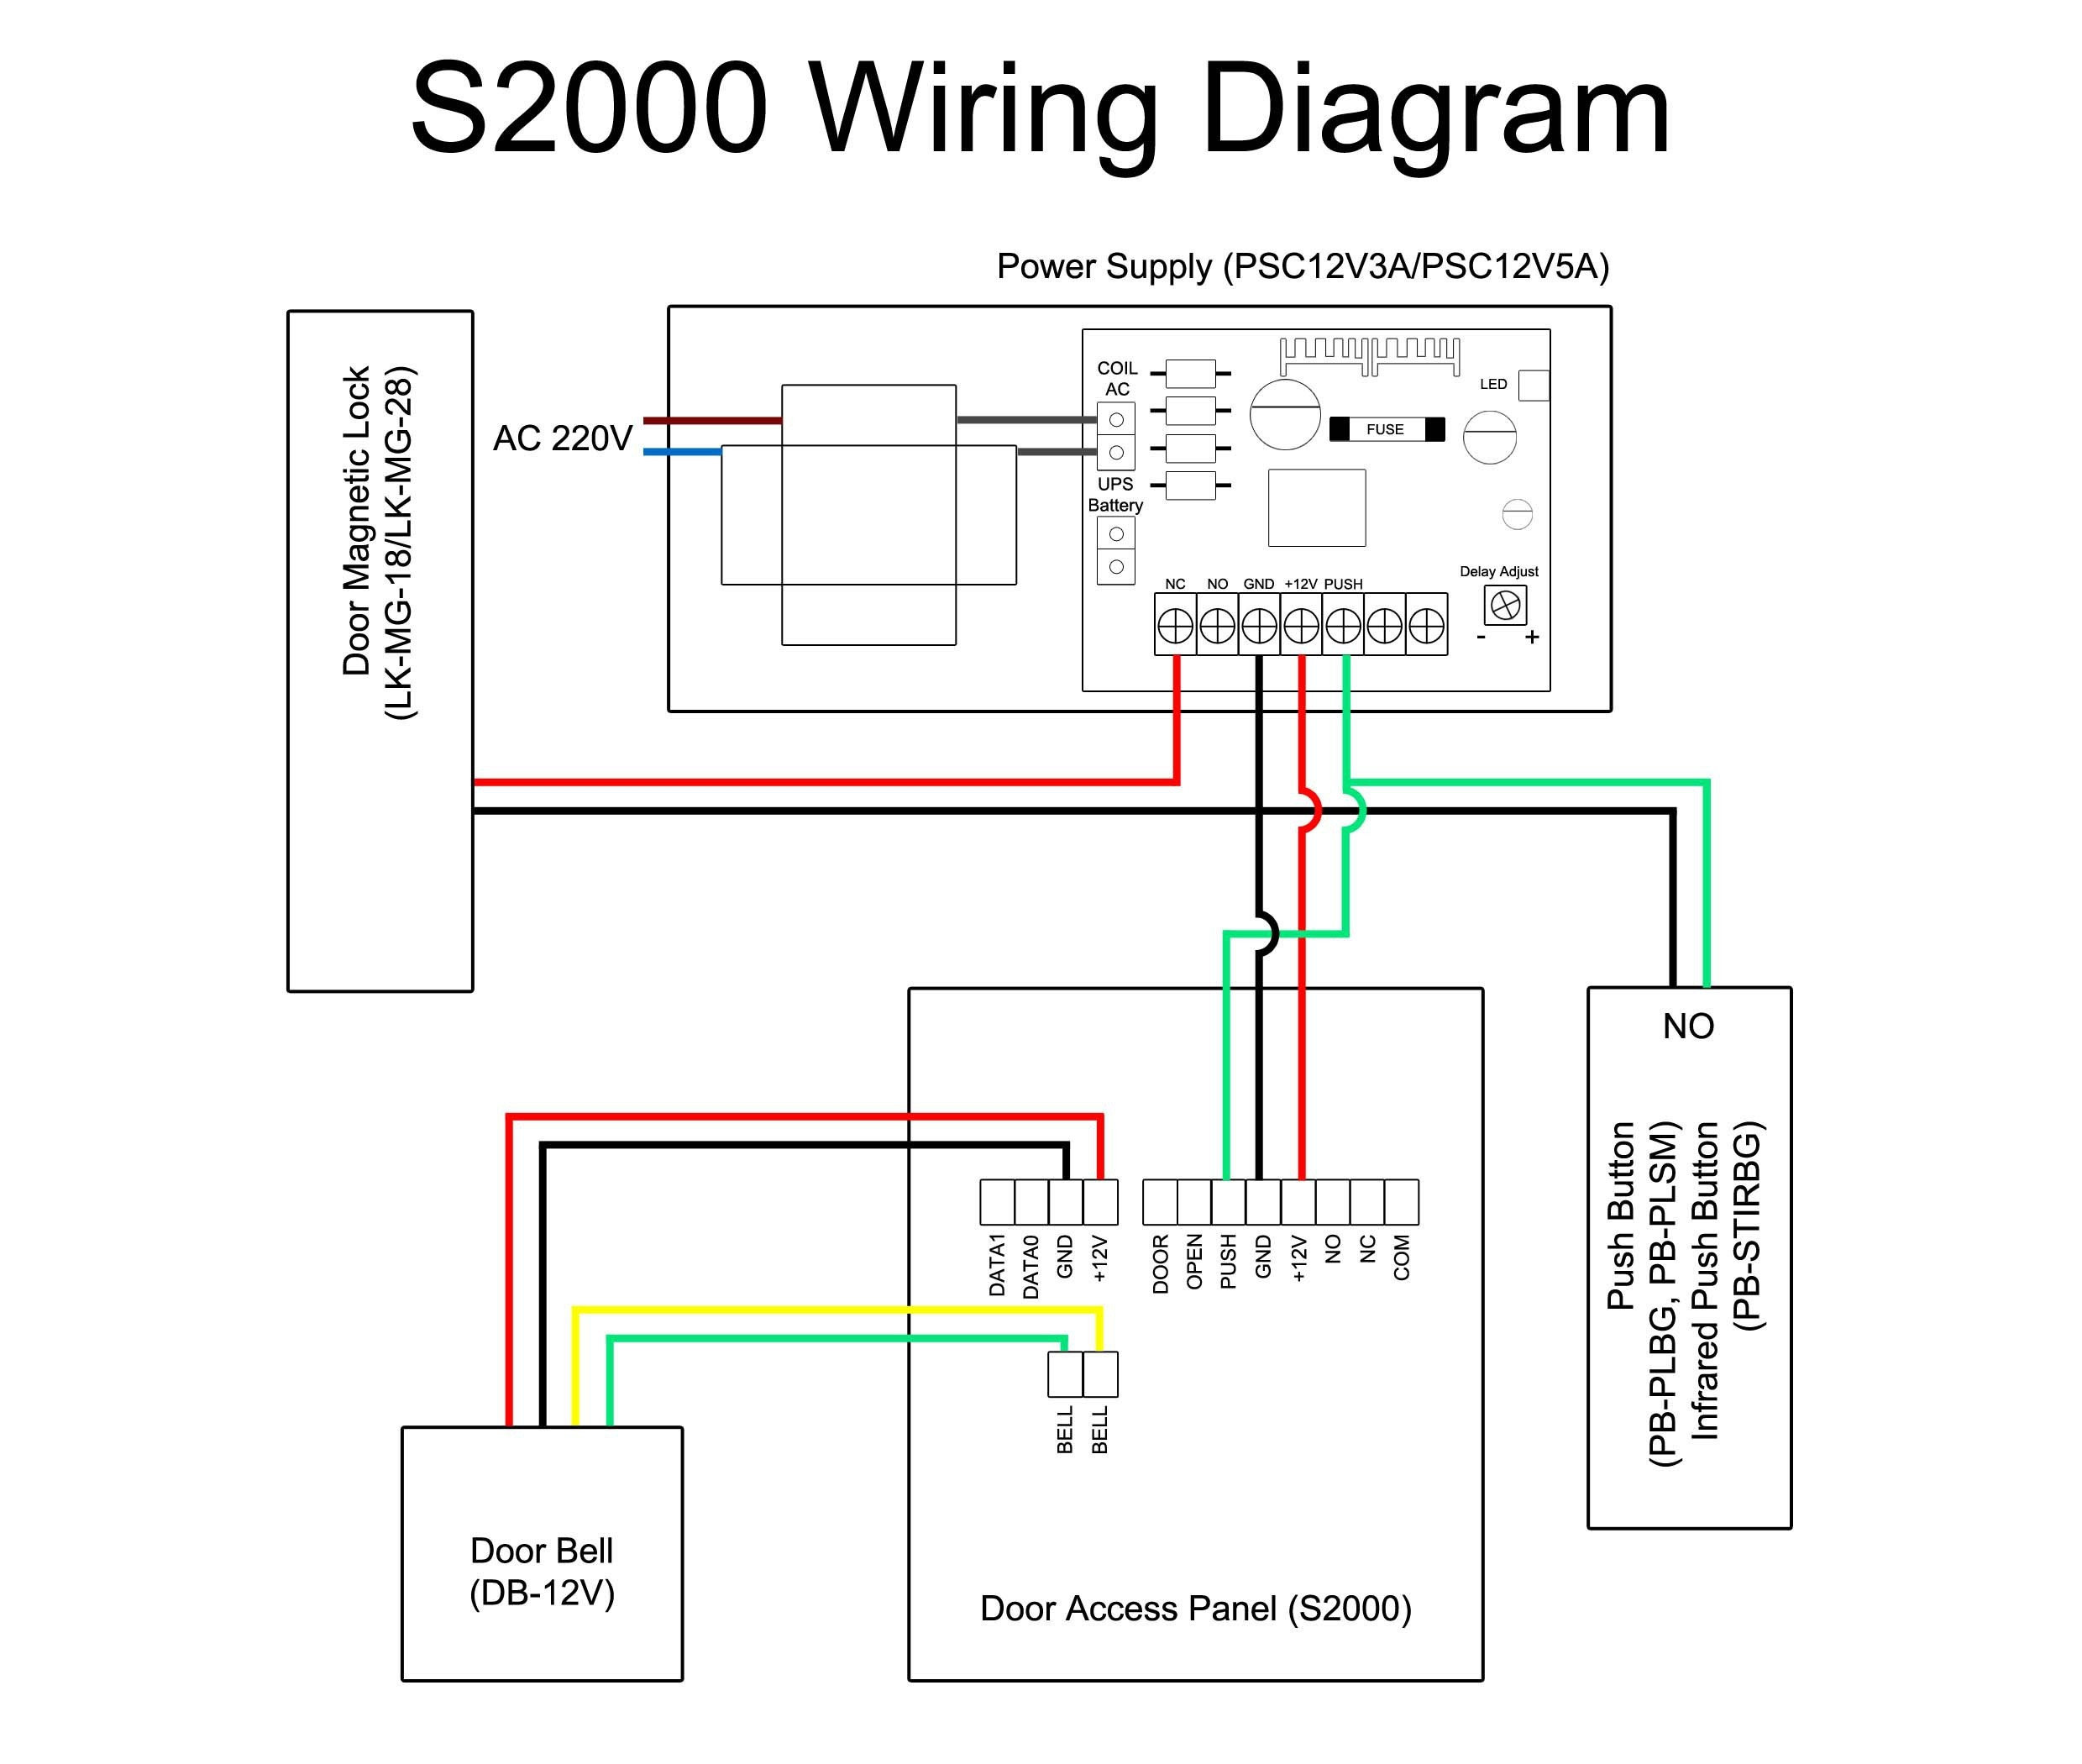 samsung security camera wiring diagram Collection-Wiring Diagram for Home Security Camera Save Home Cctv Wiring Diagram Save Best Harbor Freight 16-n